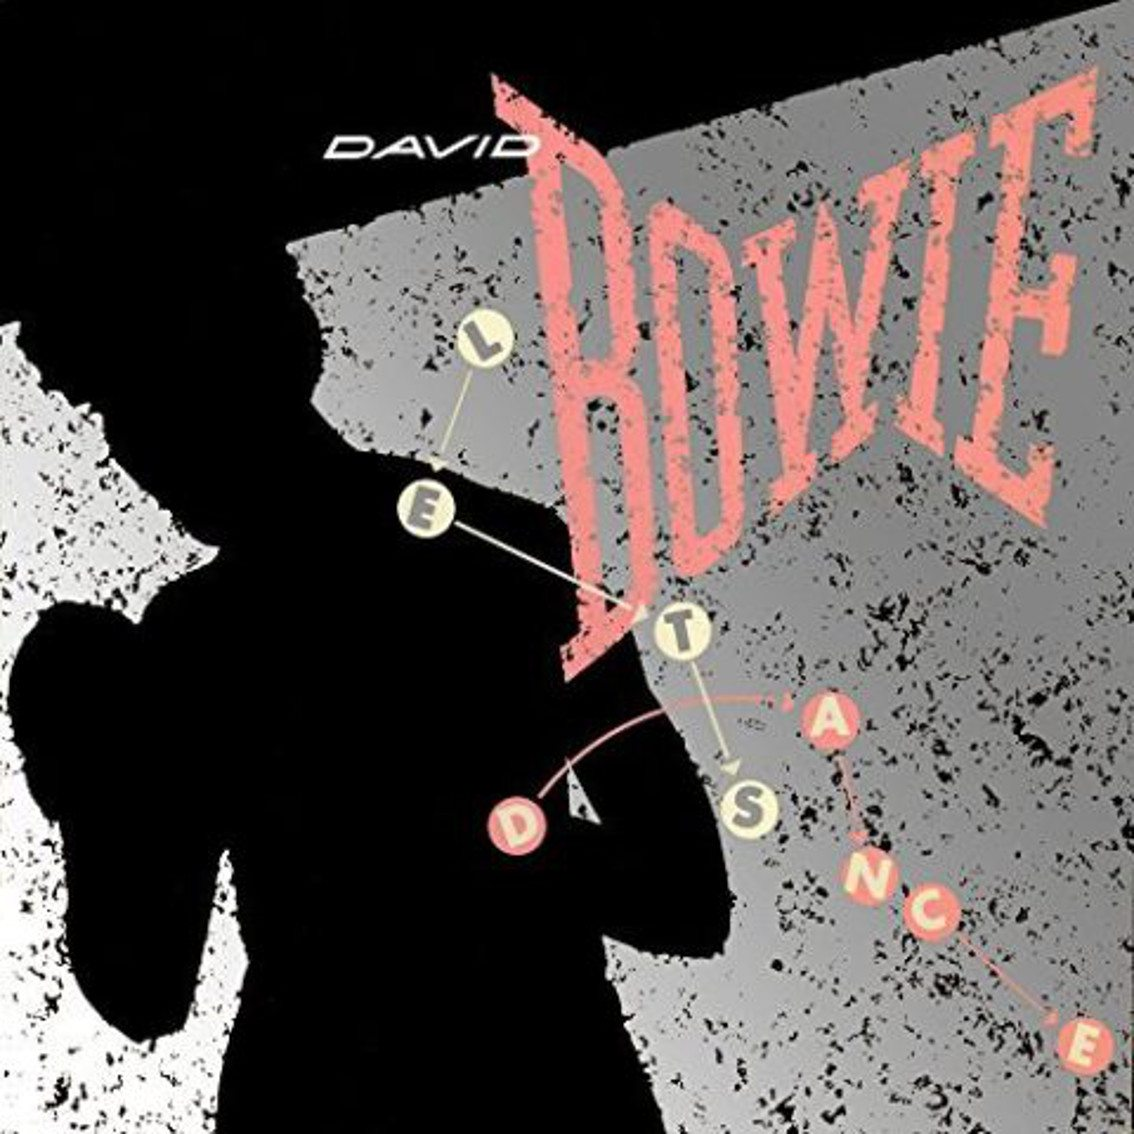 David Bowie demo'Let's Dance' released - listen here